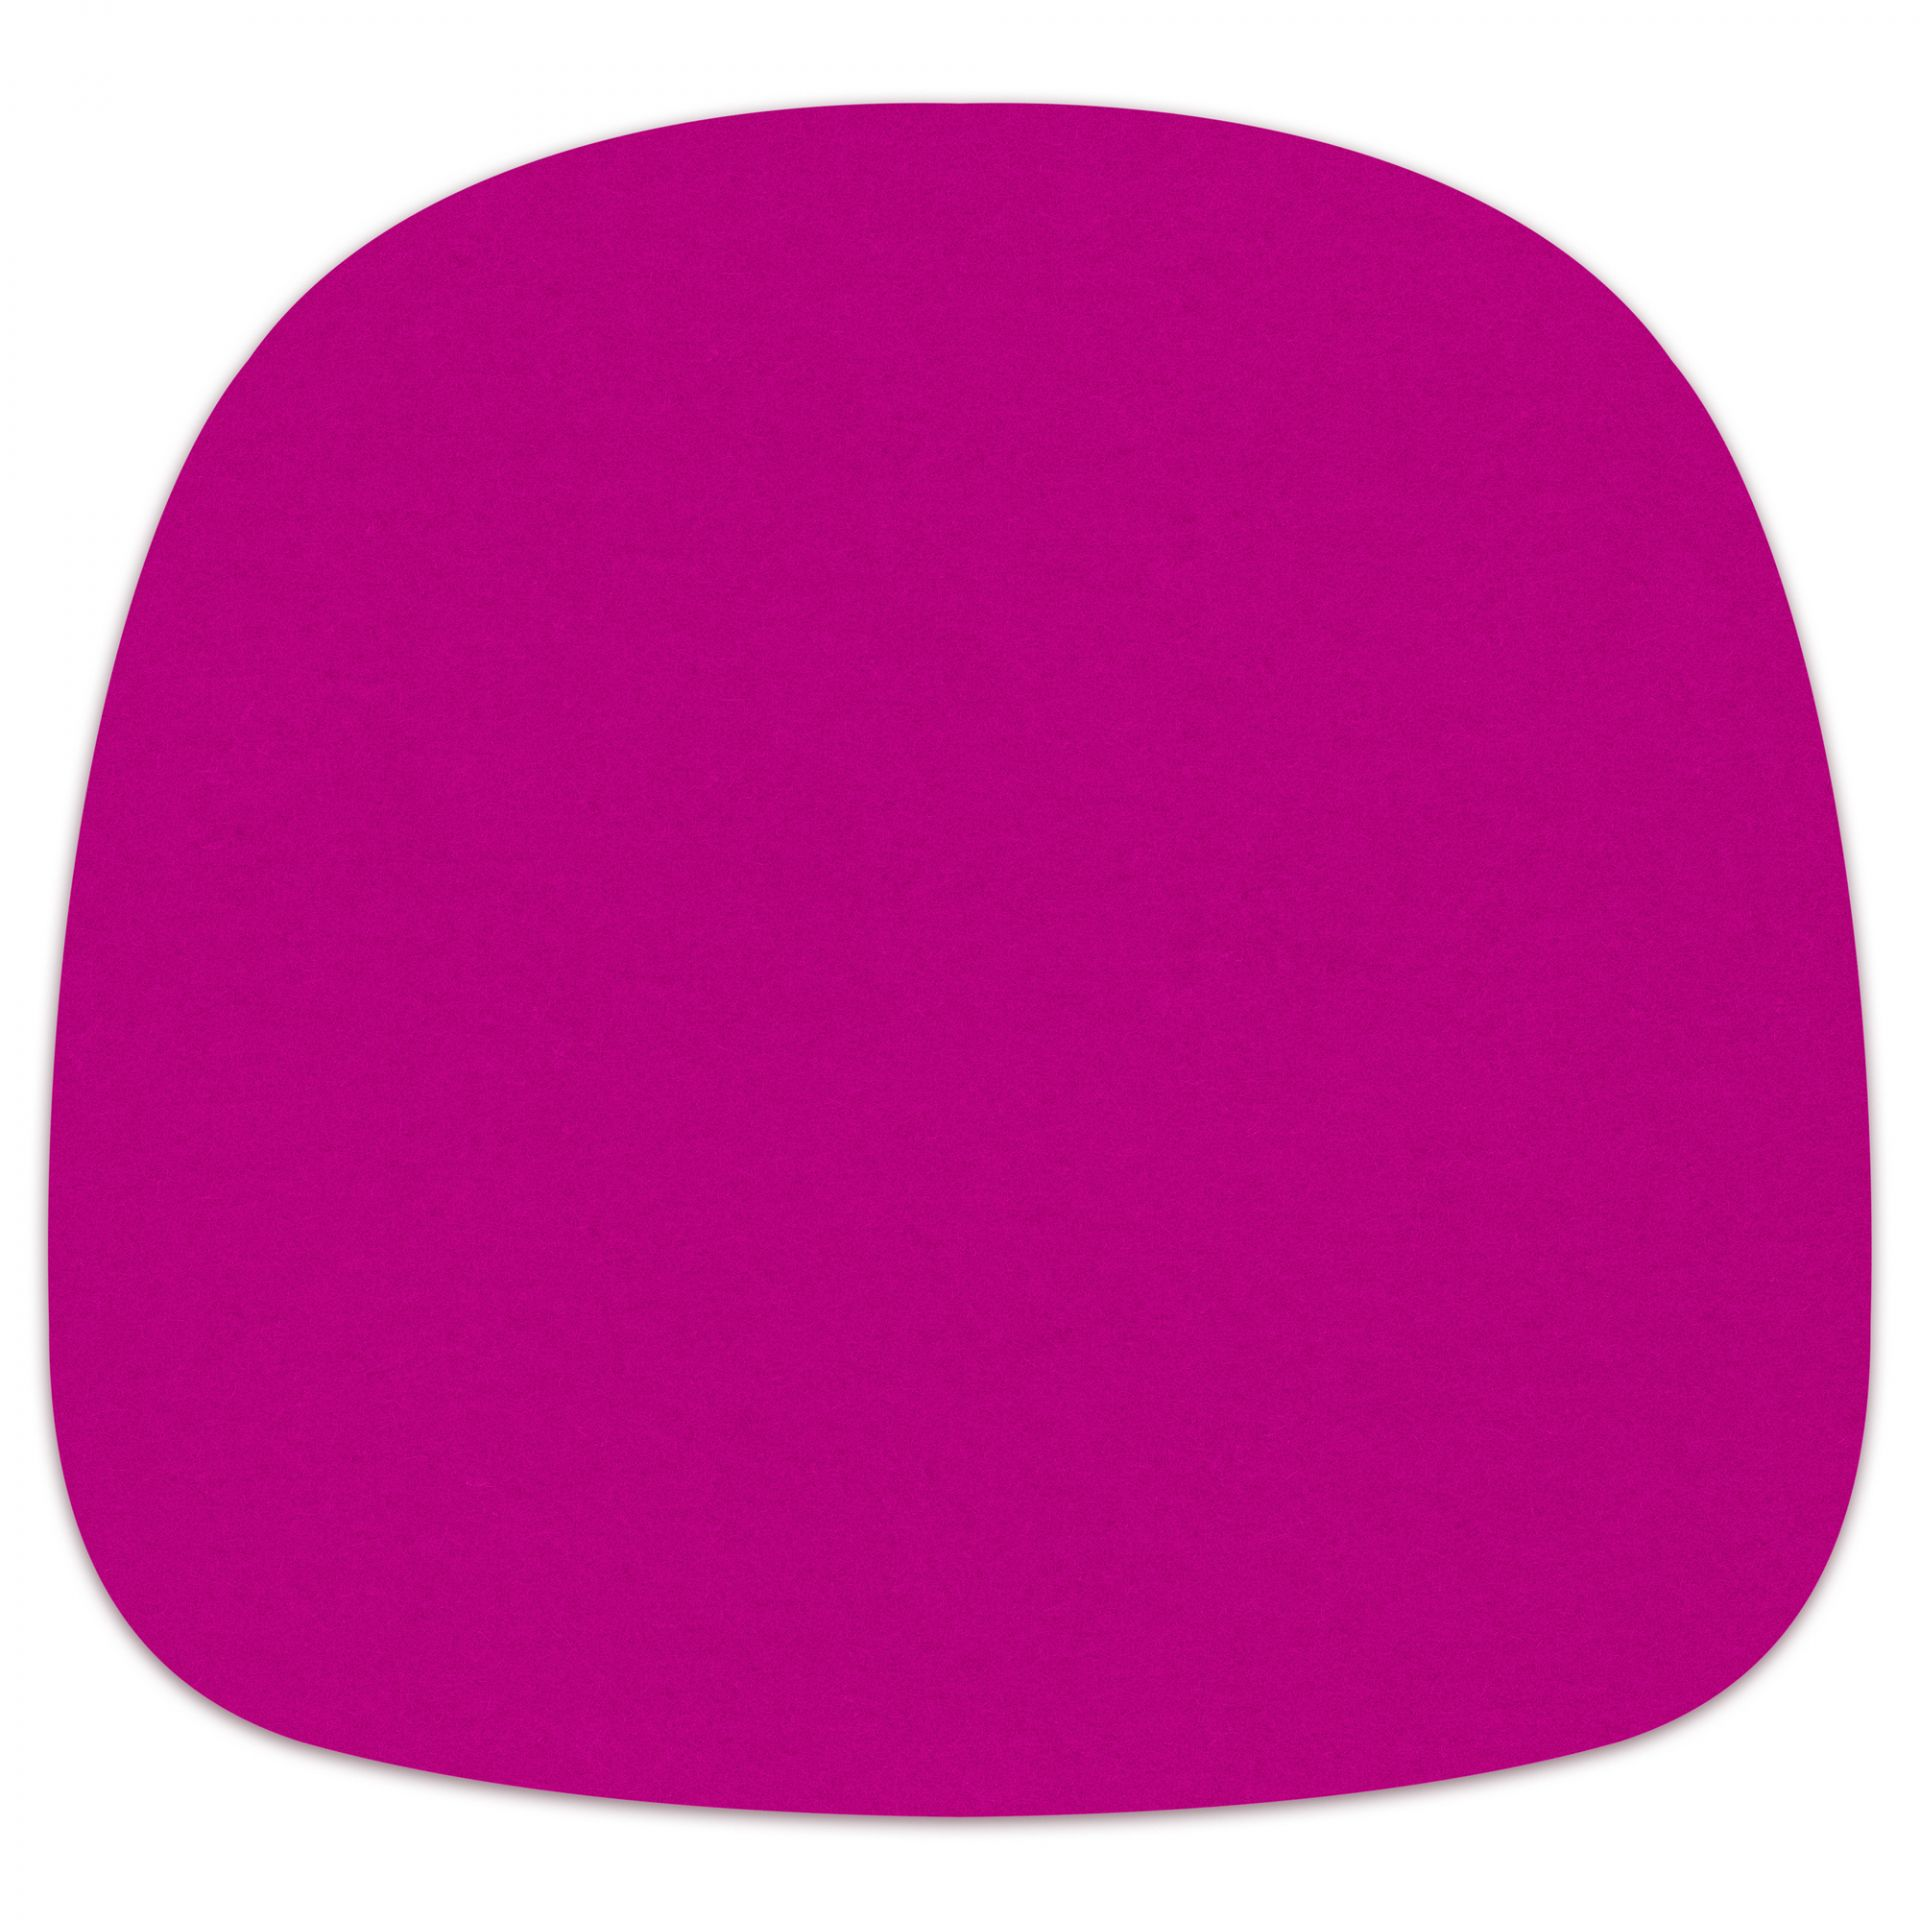 Seatcover Feltcover for Hay About A Chair AAC22 / AAC 22 Pink Hey Sign